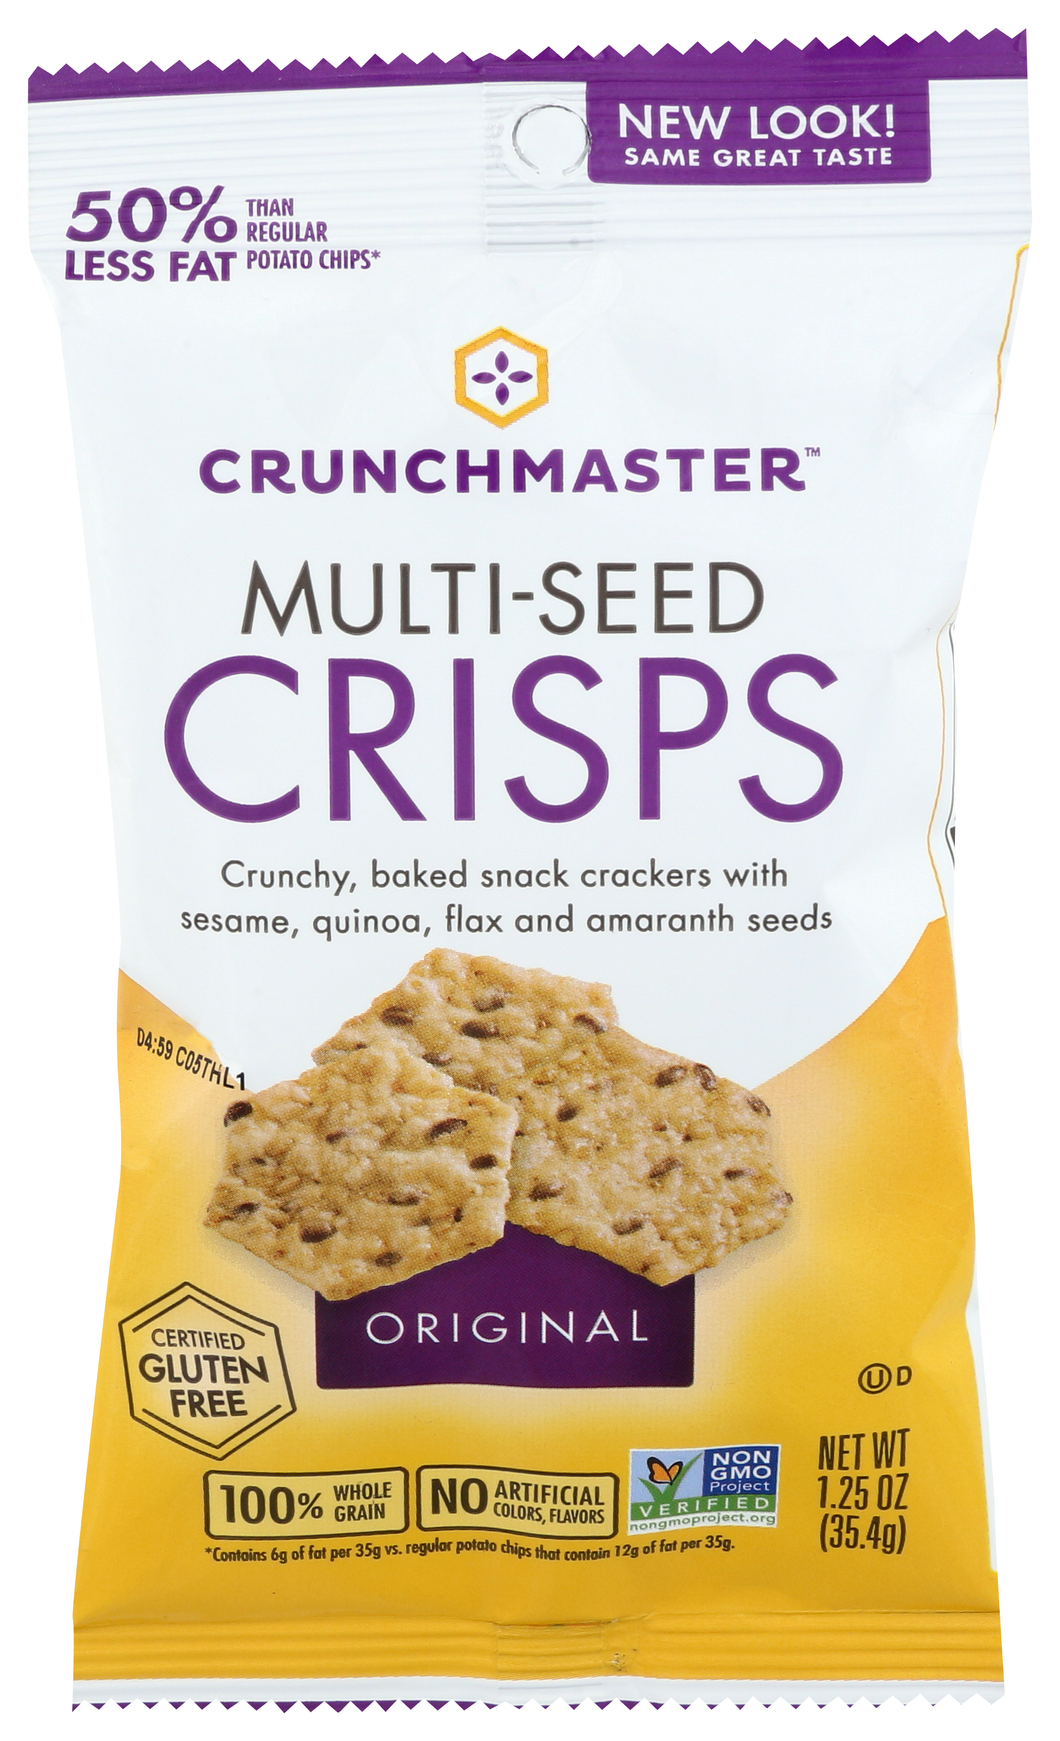 Crunchmaster Multi-Seed Crisps Original